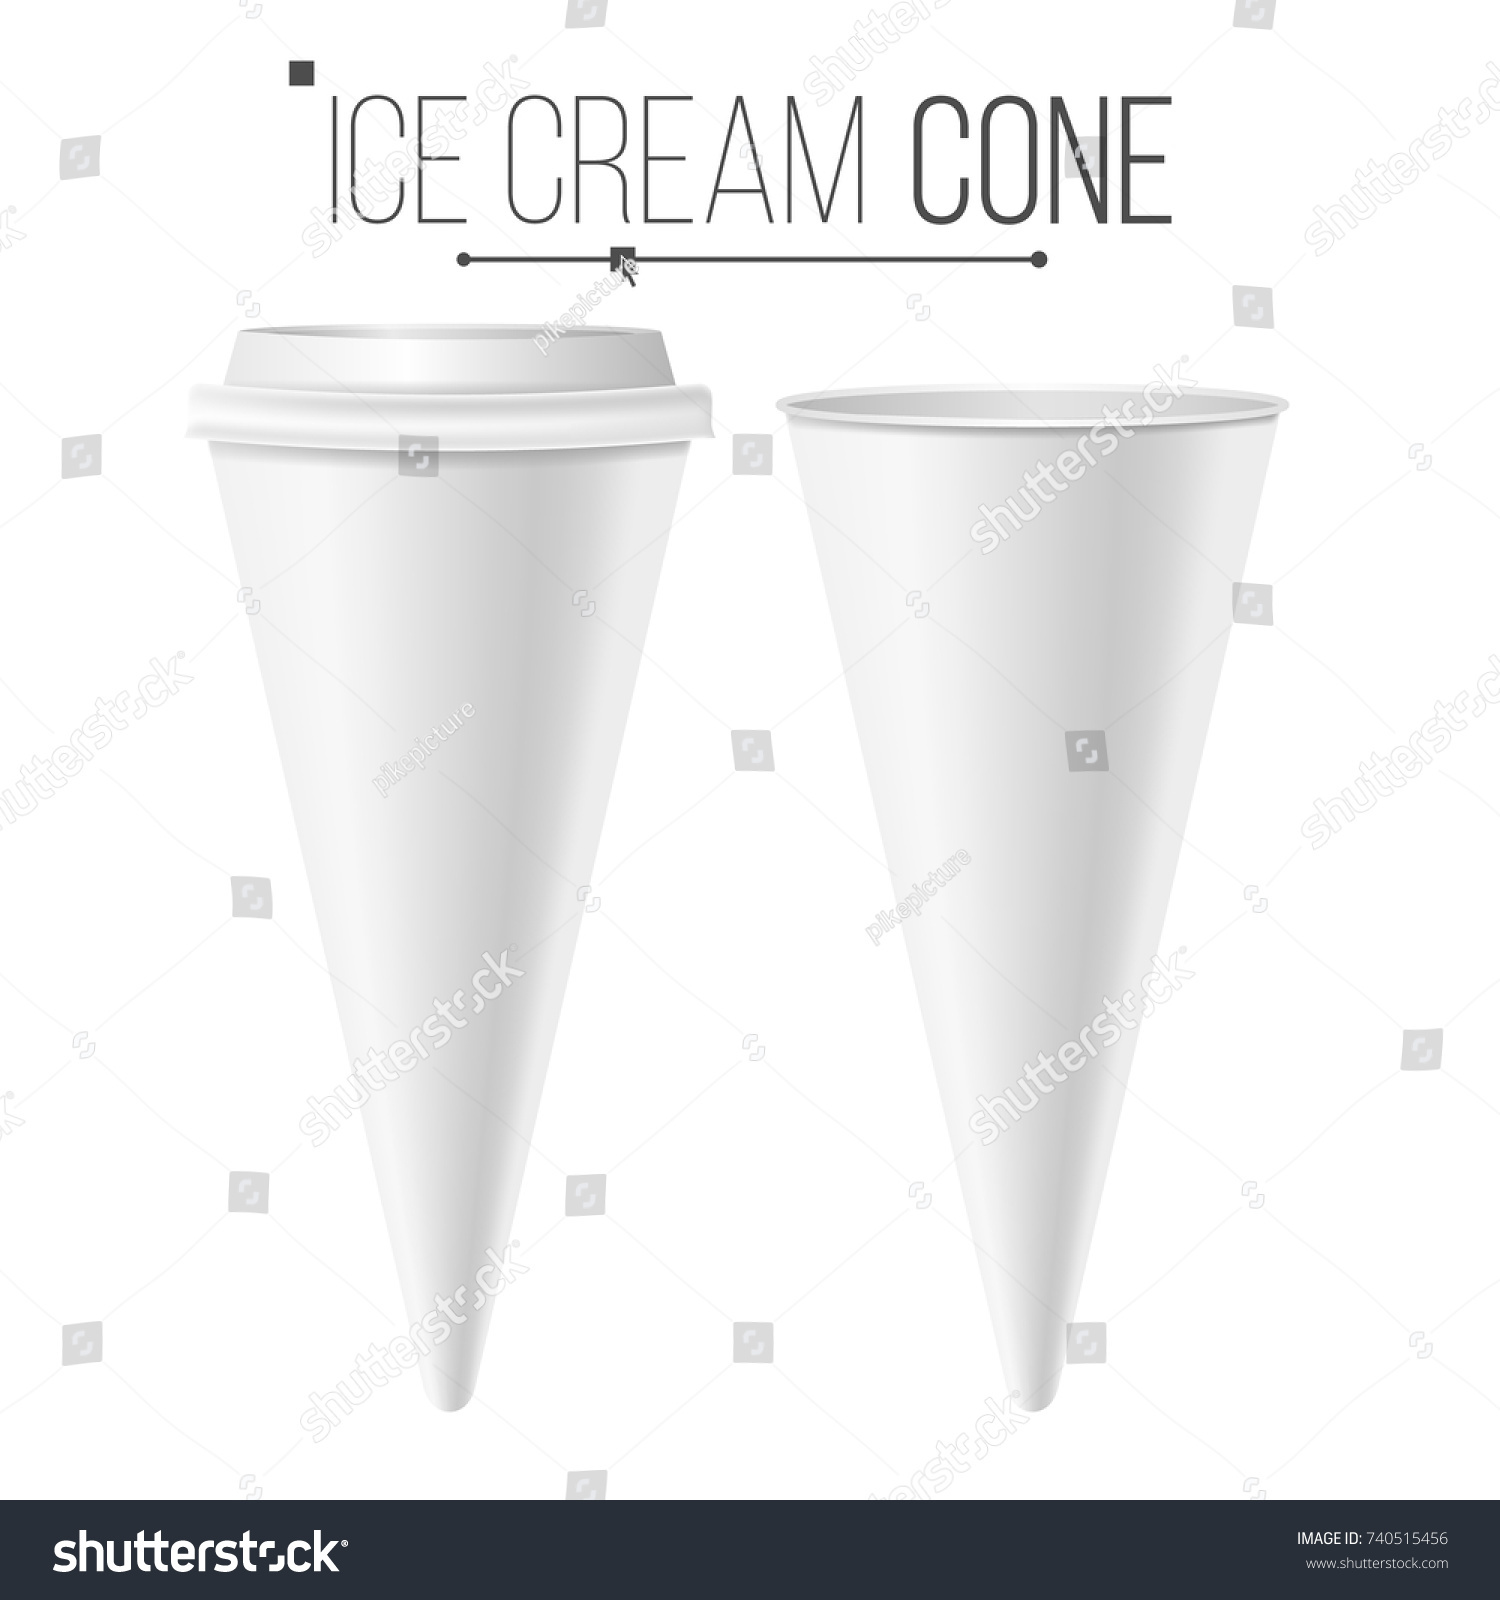 20 Luxury Cone Template Best Template